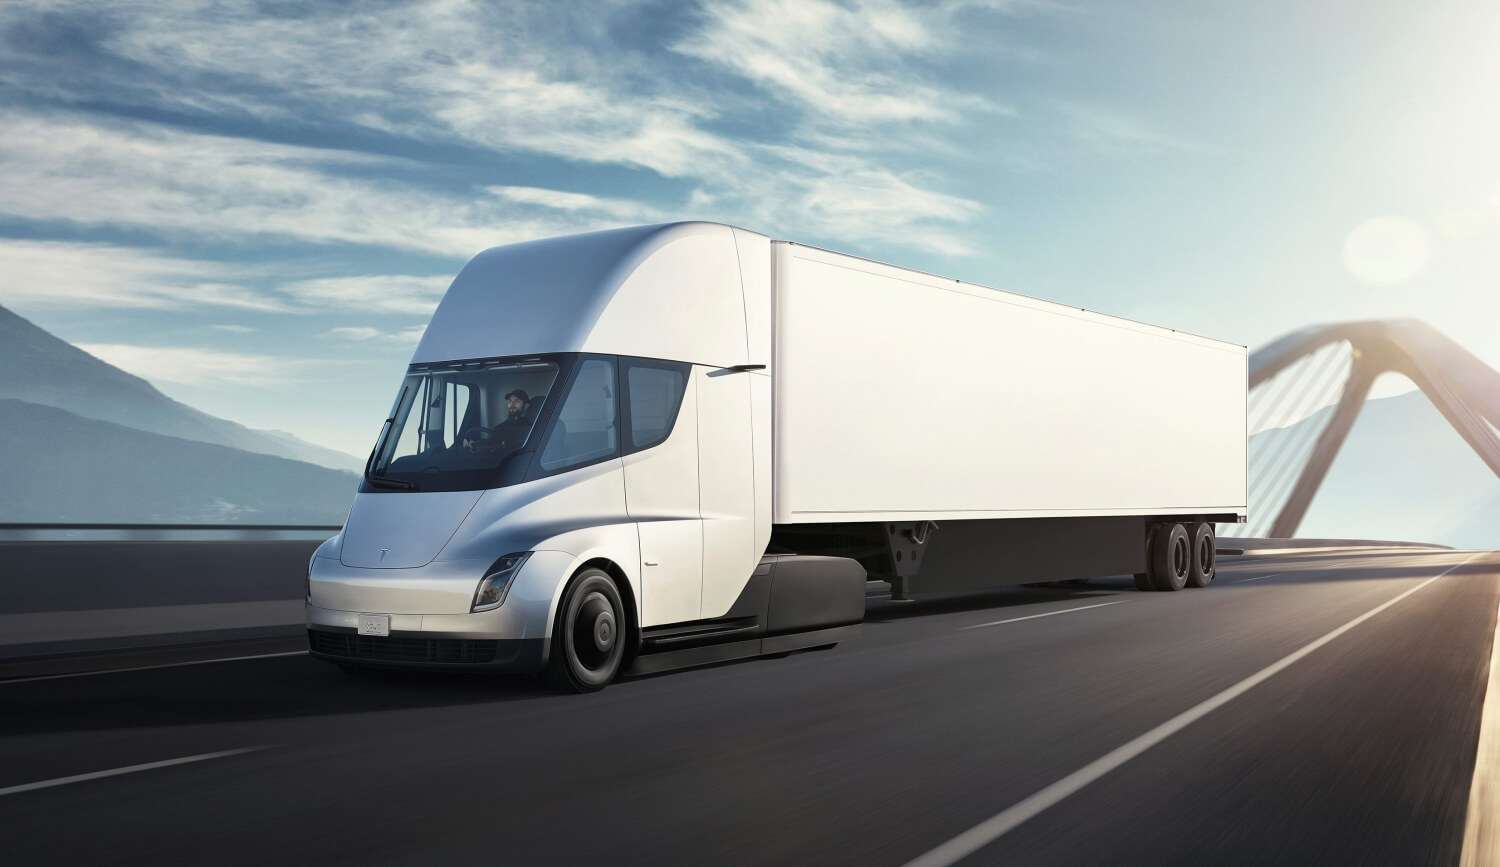 Elon Musk says Tesla's all-electric Semi is ready to enter volume production